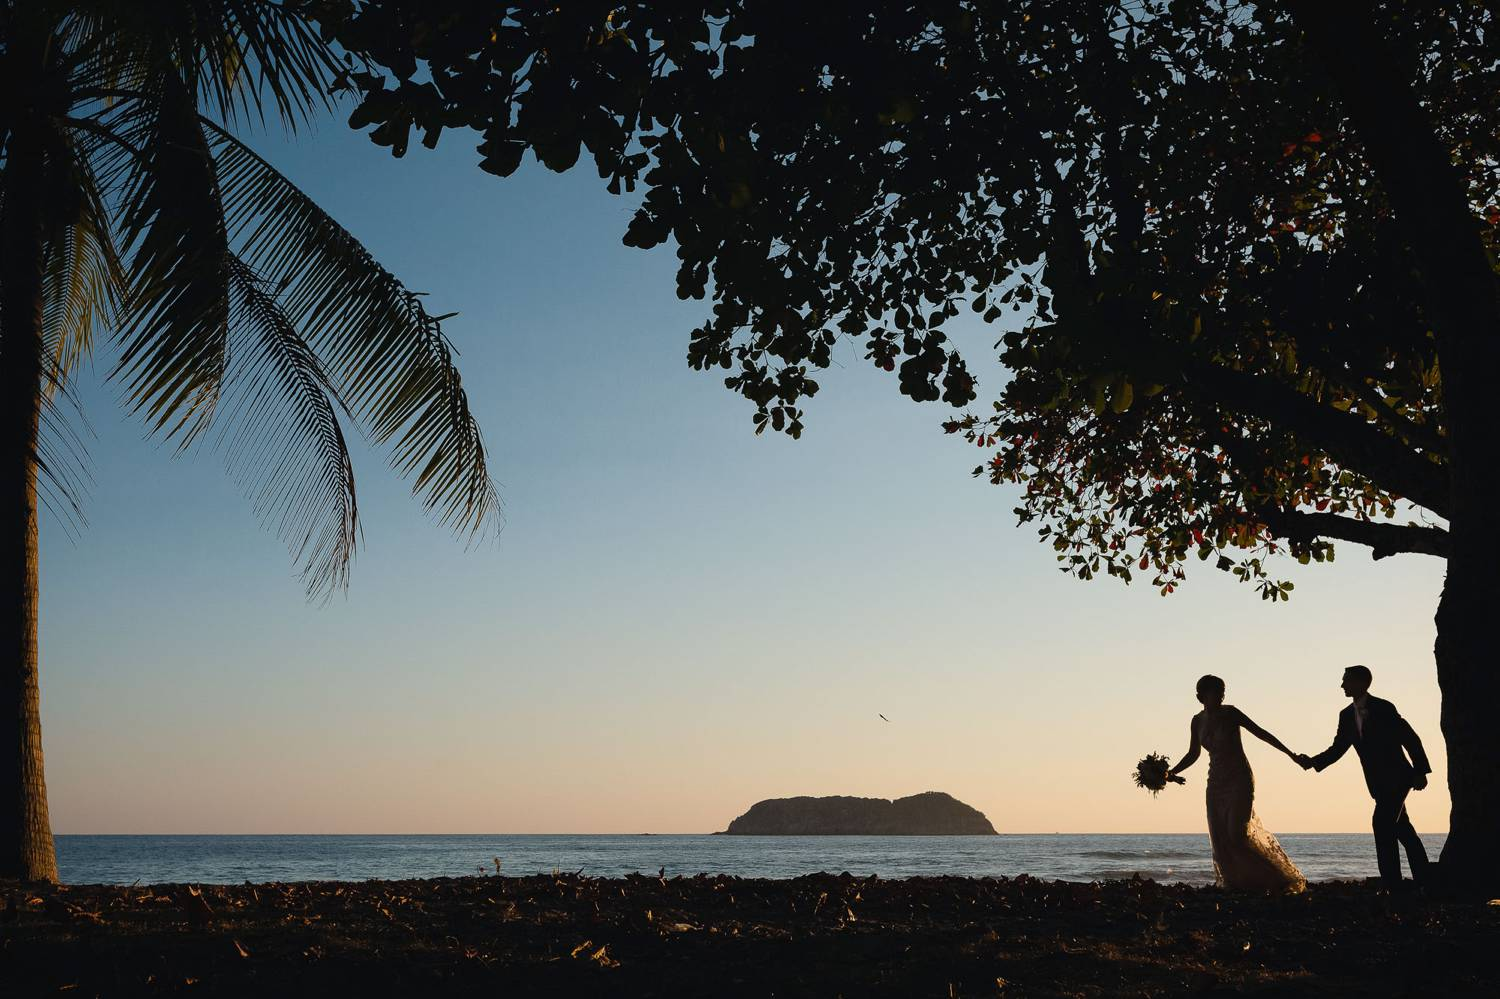 A photograph by Kevin Heslin depicts the sillhouettes of newlyweds through palm trees as they walk along a beach at sunset.